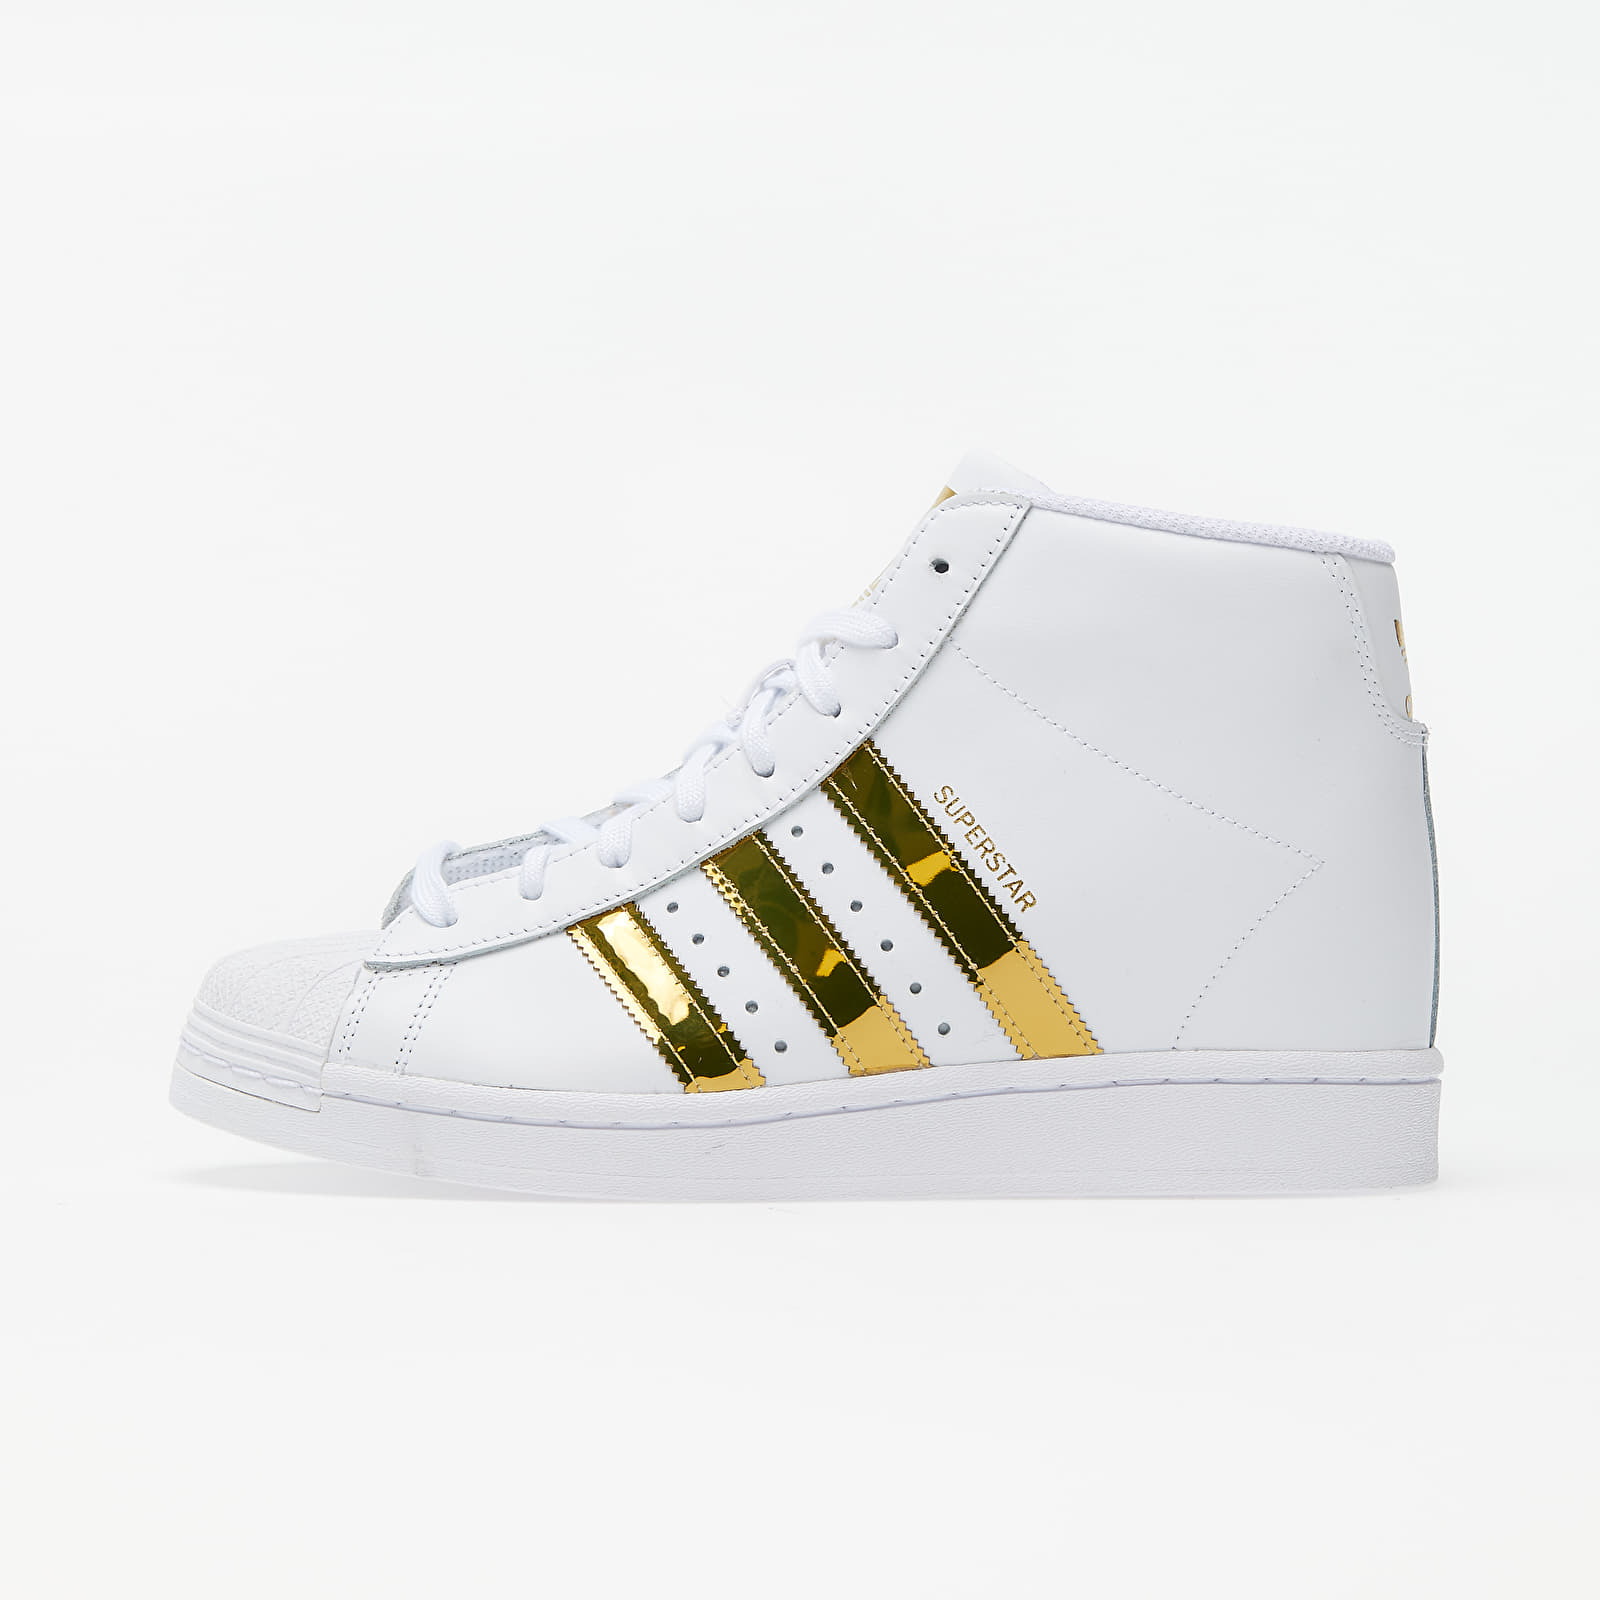 adidas Superstar Up W Ftw White/ Gold Metalic/ Core Black EUR 39 1/3